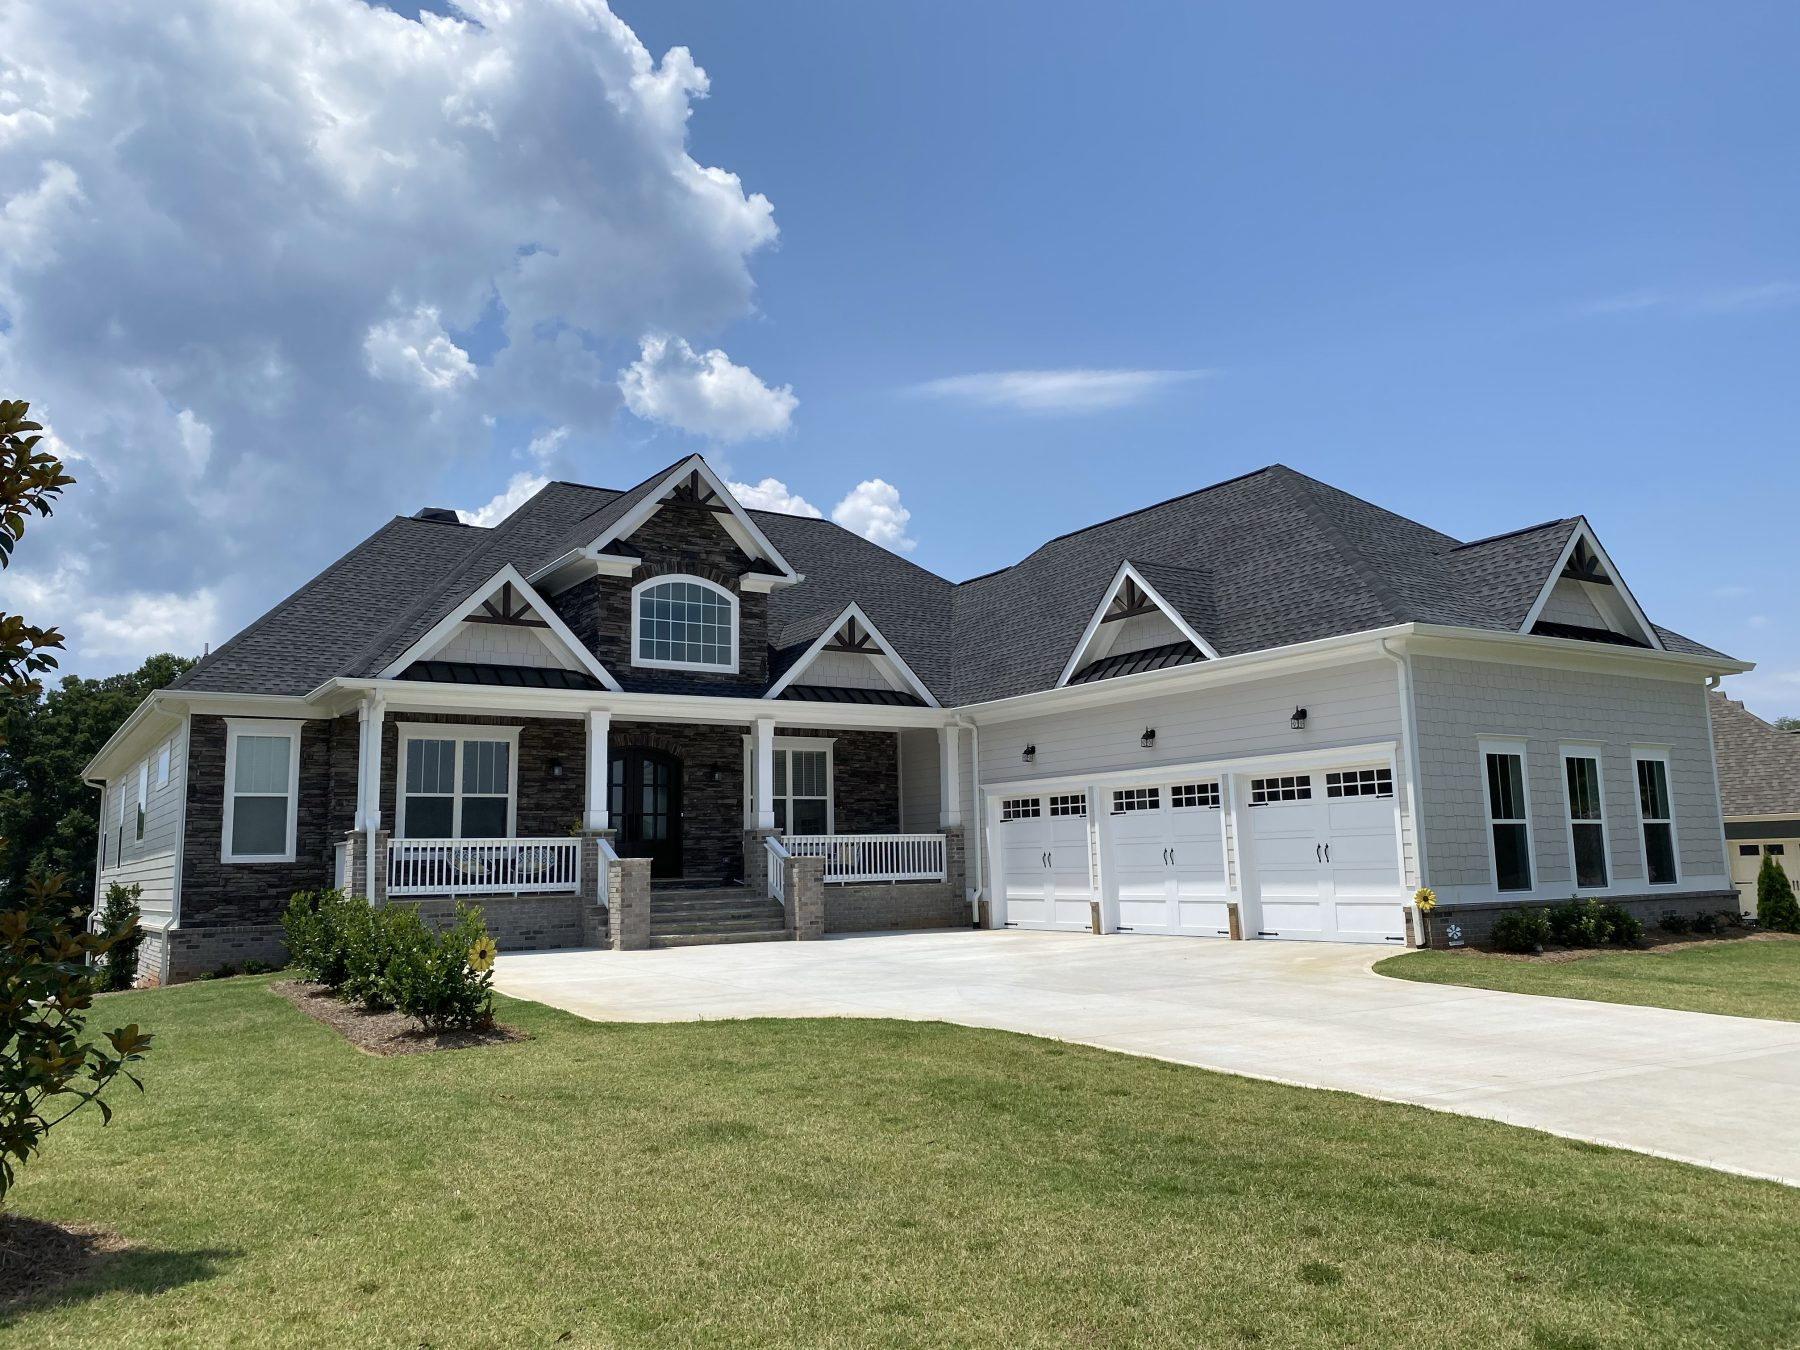 homes for sale such as the ones you'll find near Chateau Elan in Traditions of Braselton